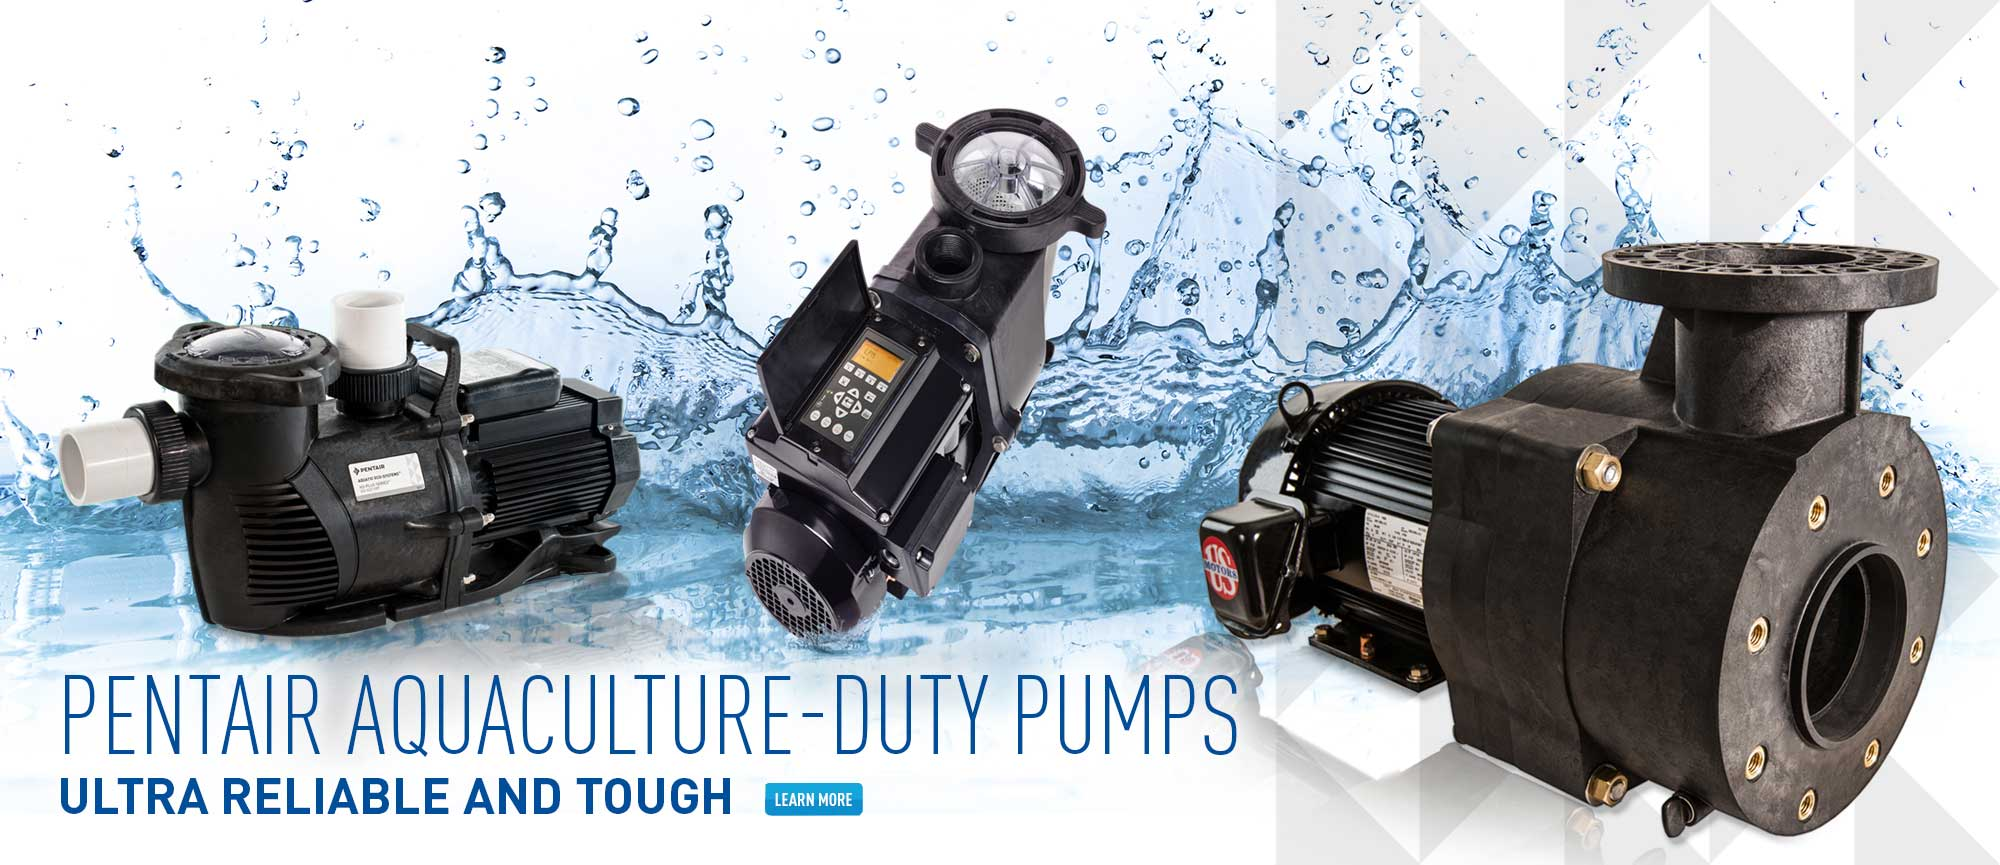 Pentair Aquaculture-Duty Pumps